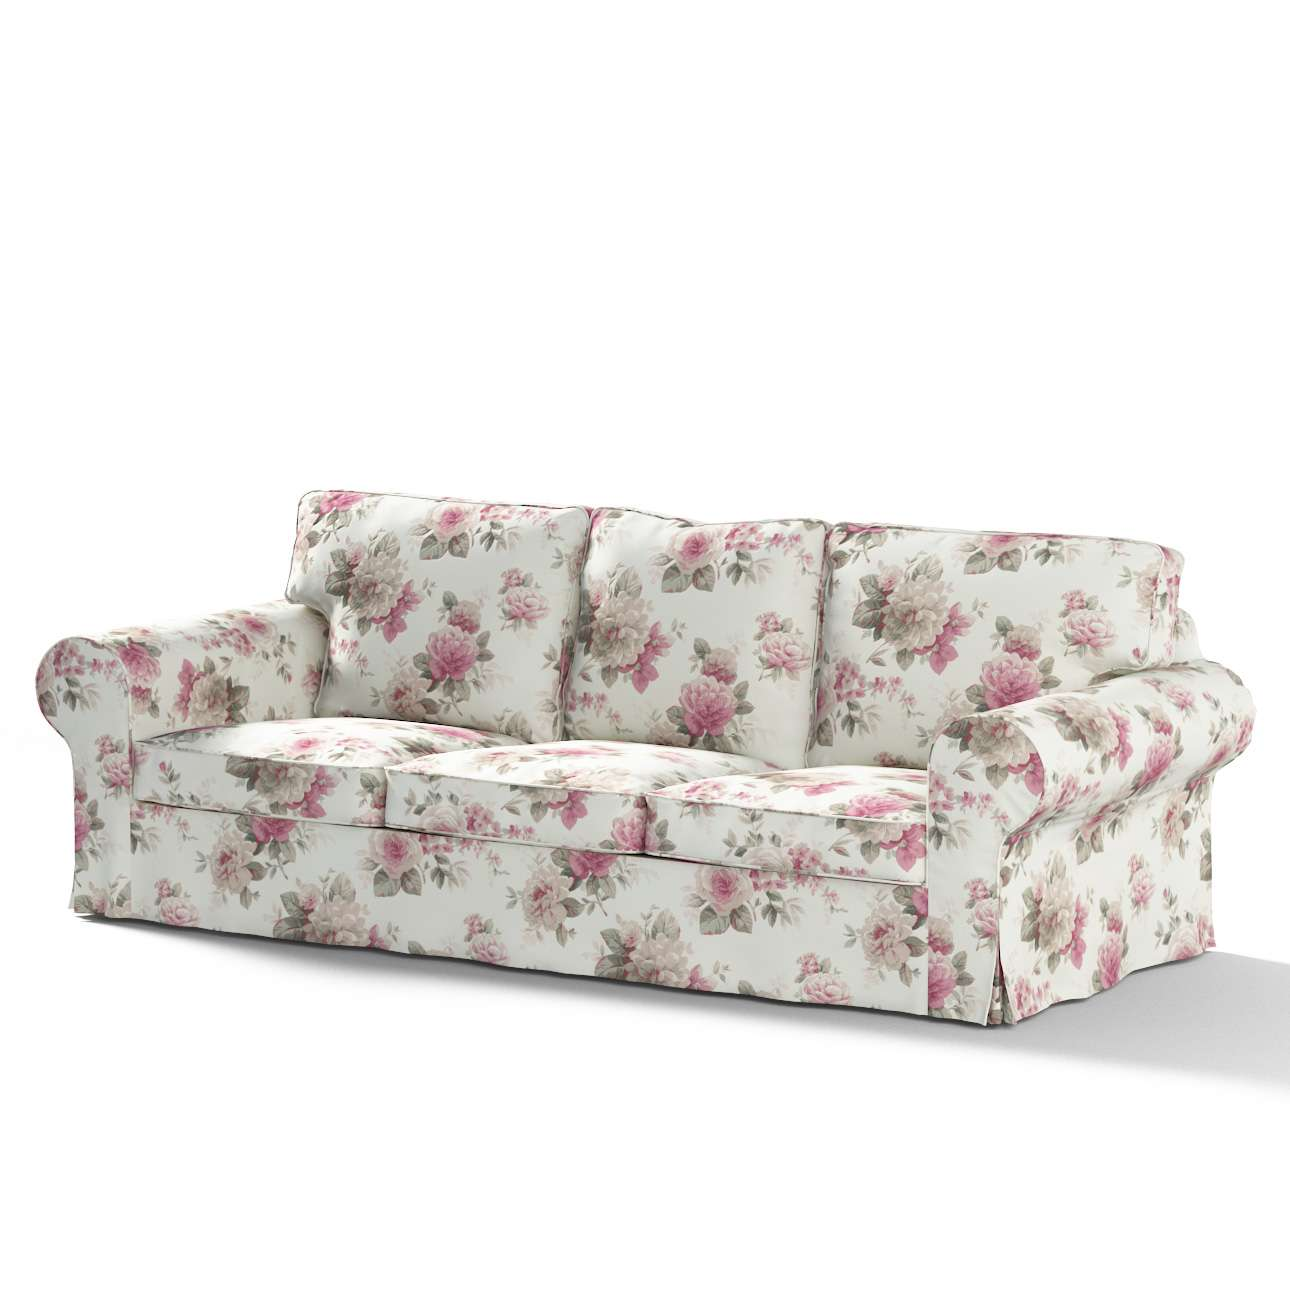 Ektorp 3 Seater Sofa Cover Pink And Beige Roses Ivory